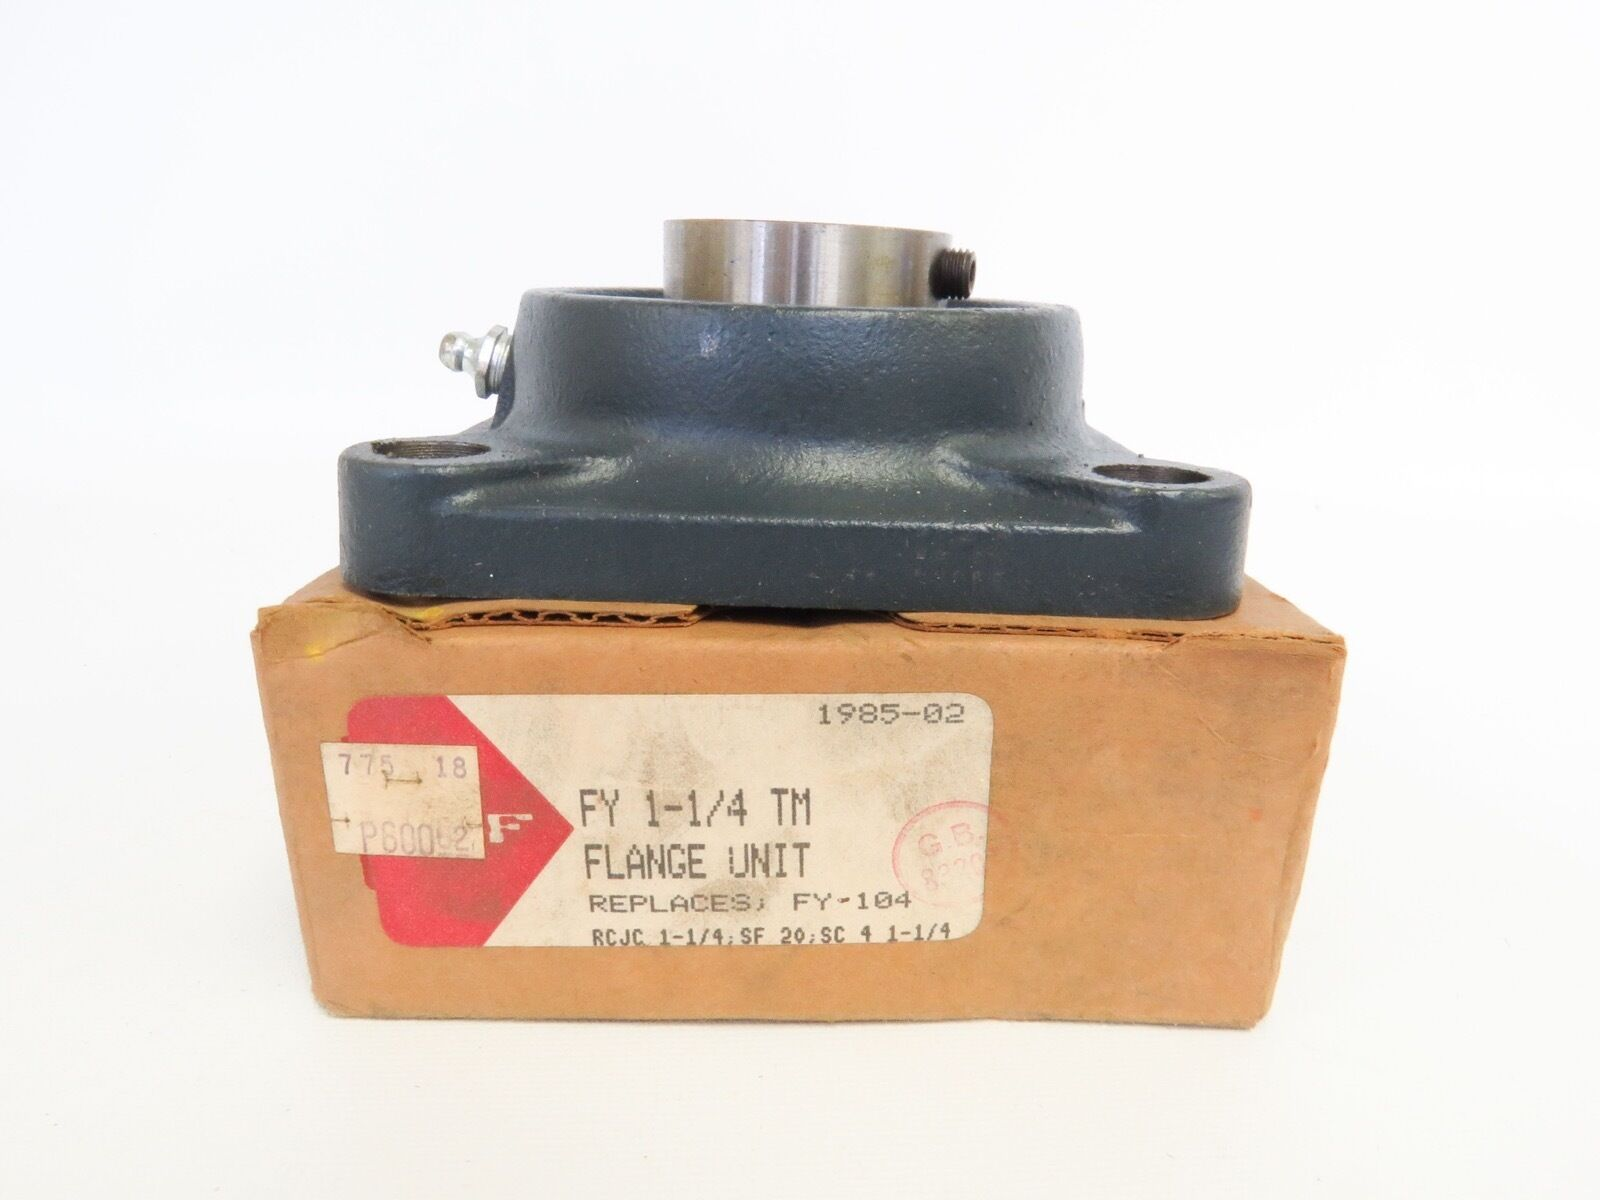 """New SKF YAR-207-104 FY 1-1 4"""" TM Flange Unit Replaces FY-104 1985-02"""